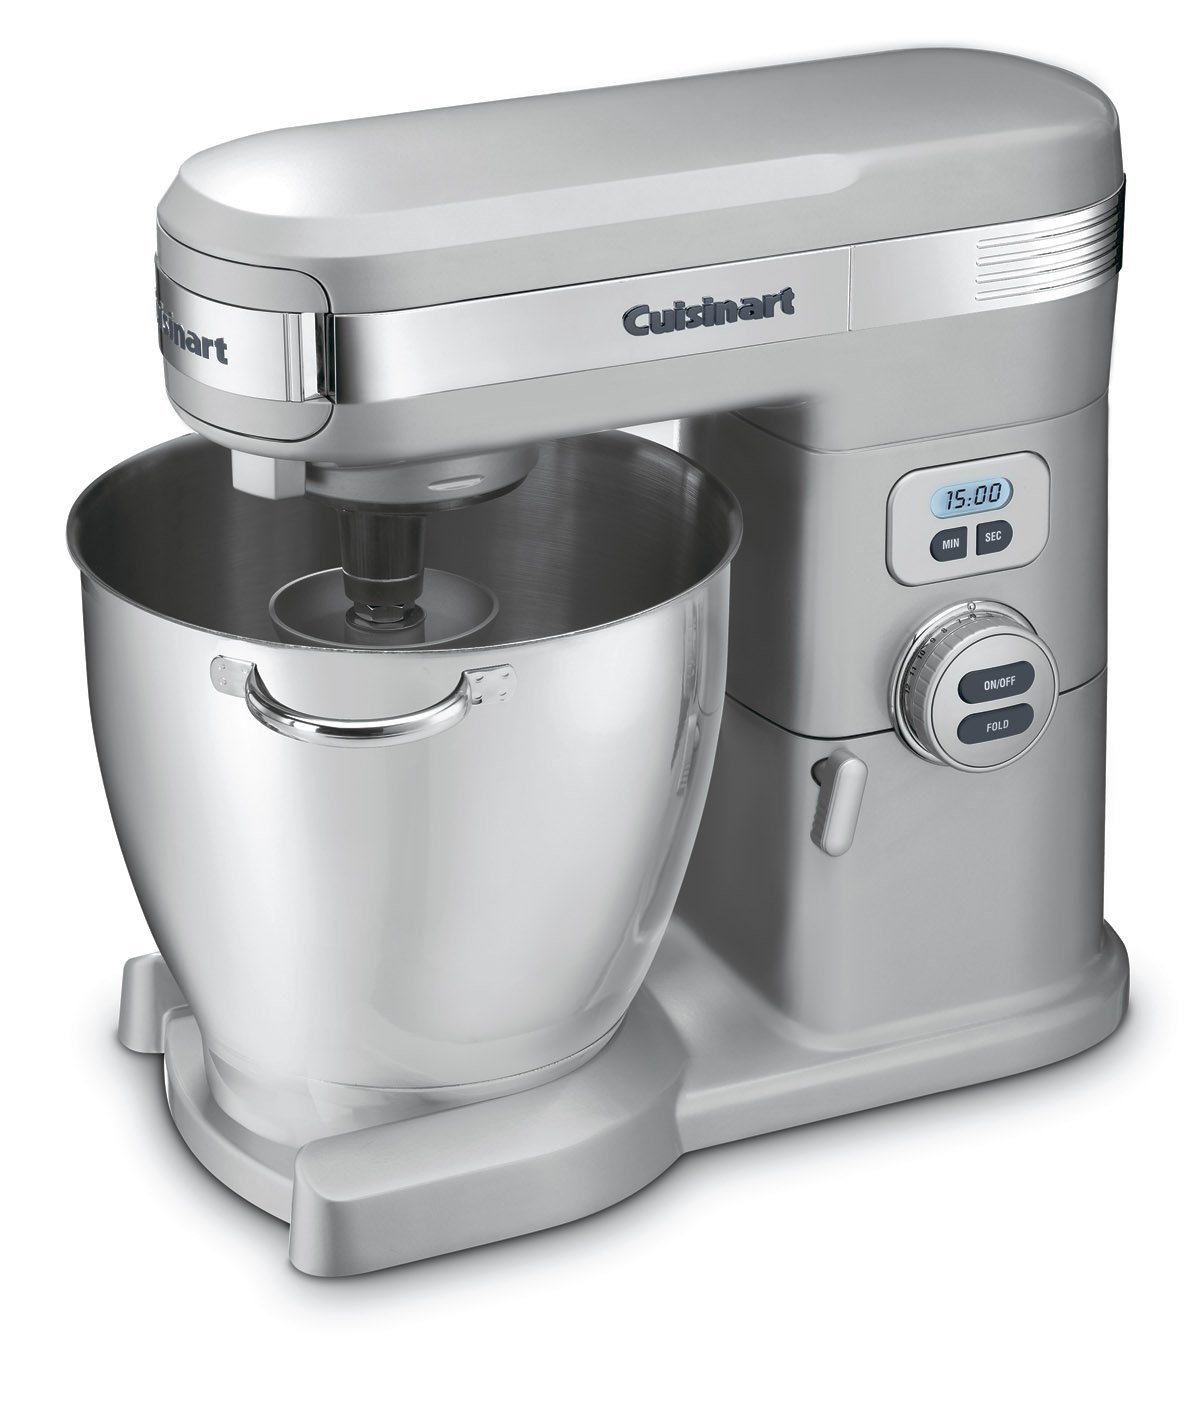 sm kitchen appliances photos of cabinets  stand mixer reviews all